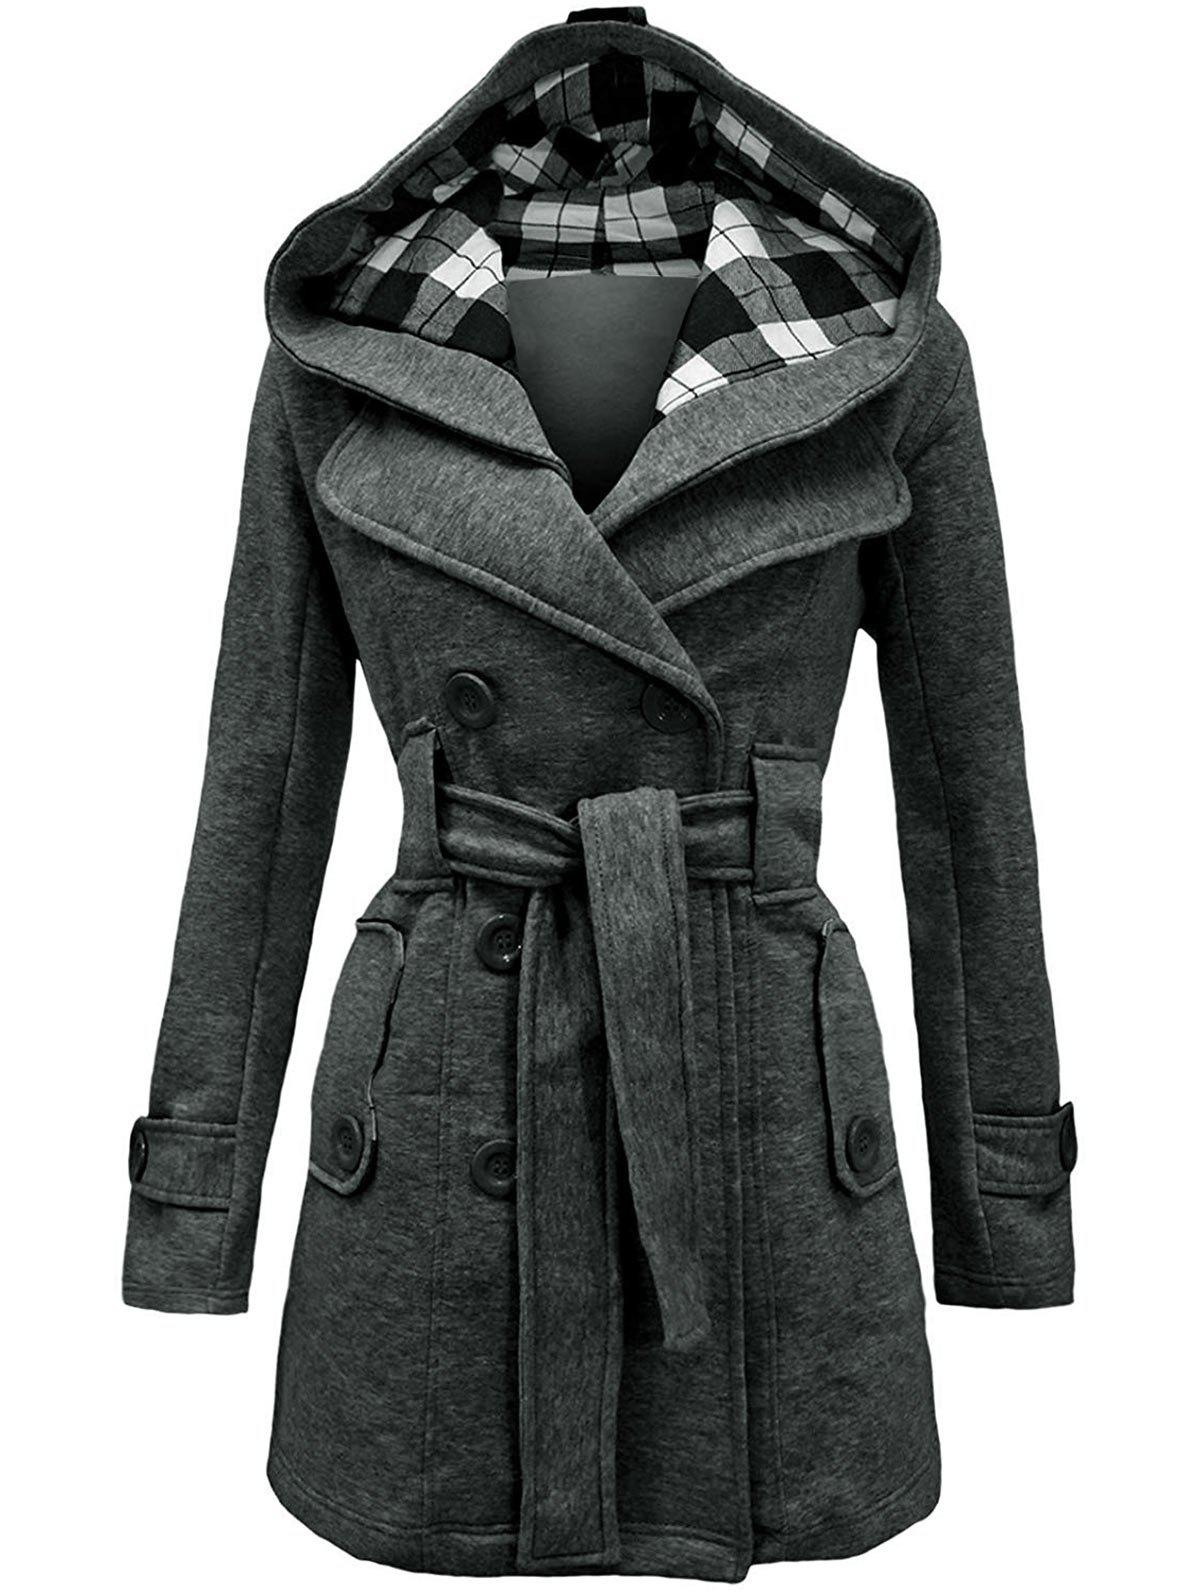 Double Breasted Belted Detachable Hood Plus Size Wool Blend Coat - GRAY 3X